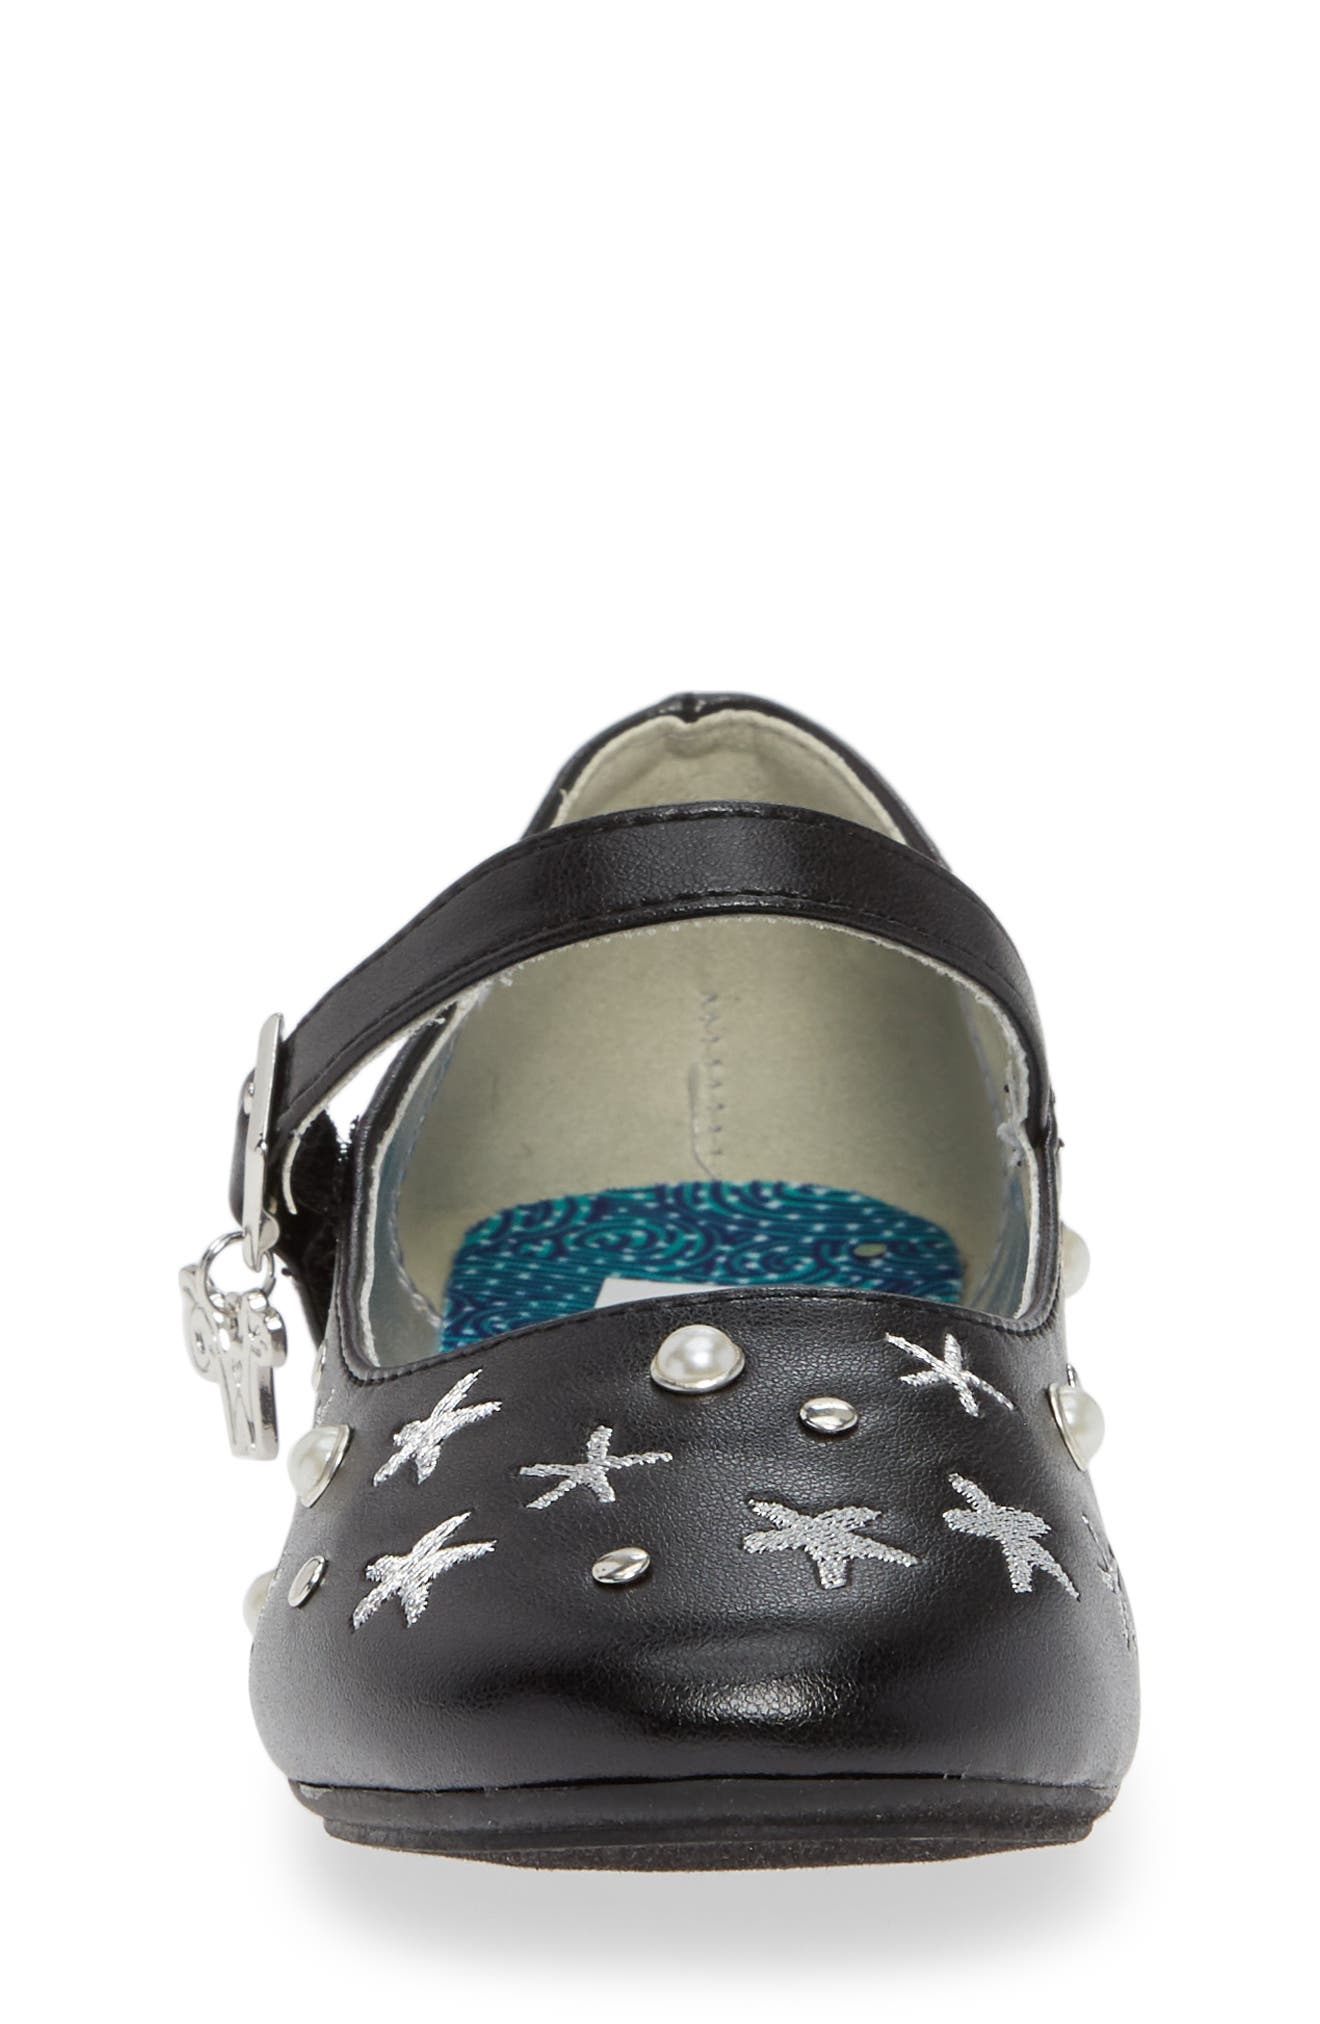 Camille Embellished Ballet Flat,                             Alternate thumbnail 4, color,                             BLACK